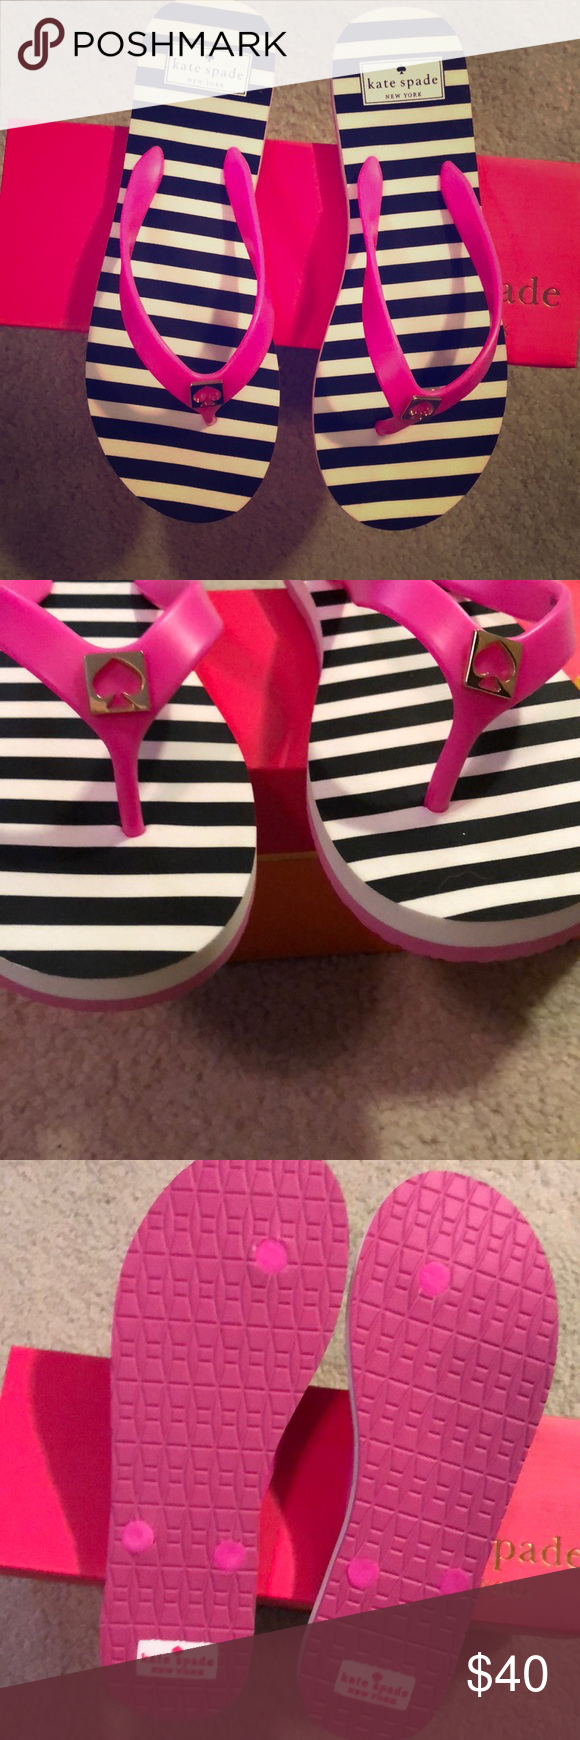 dc0a0fdb2 NIB Kate Spade Pink Black White Stripe Flip Flop 8 New flip flops by Kate  Spade. Never worn. Purchased at Nordstrom. kate spade Shoes Sandals